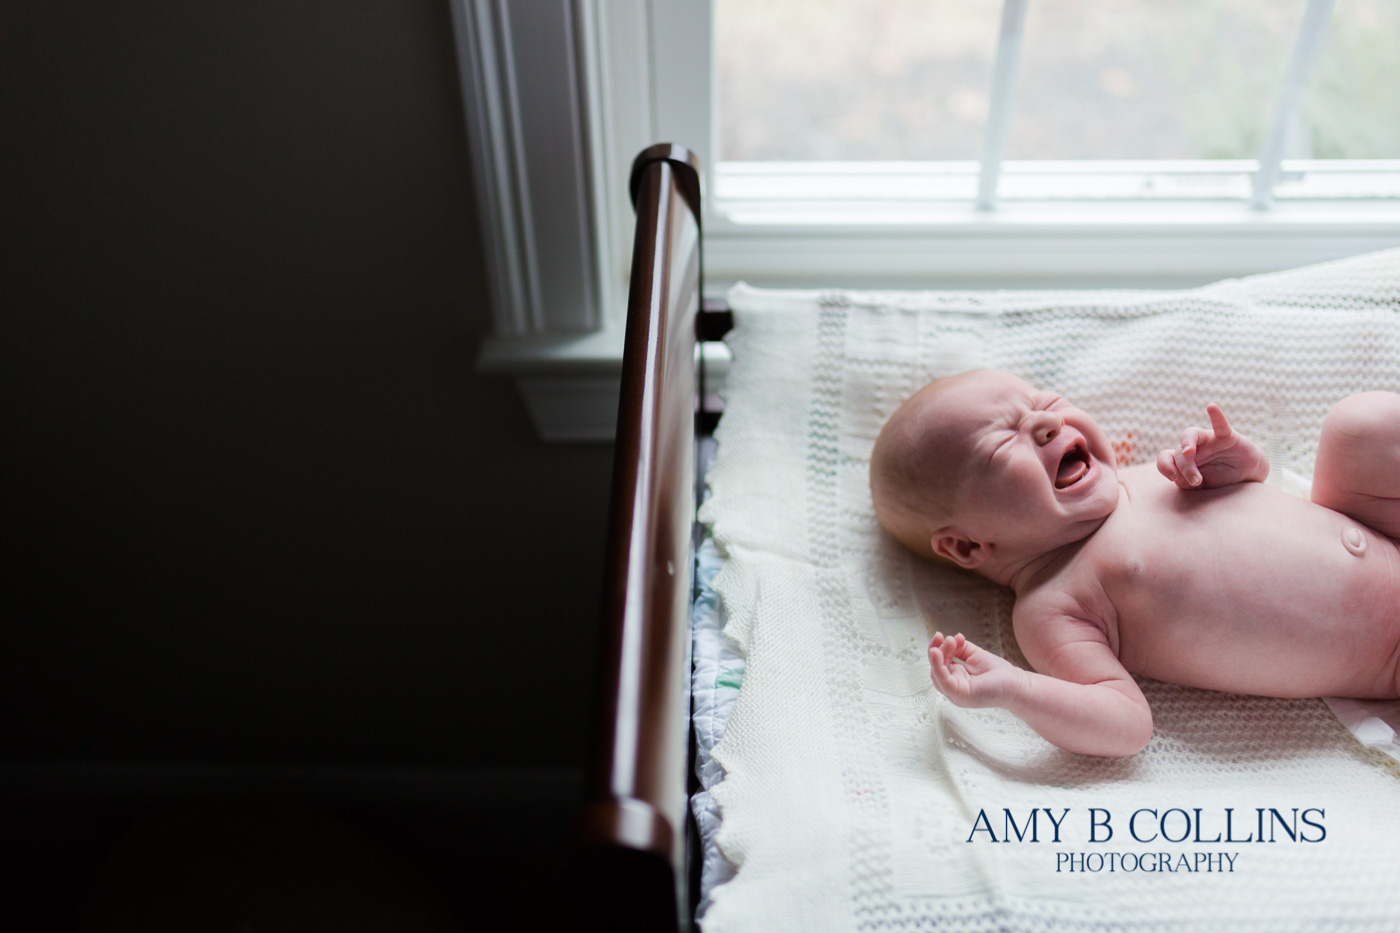 Amy_B_Collins_Photographer_Needham - 04.jpg